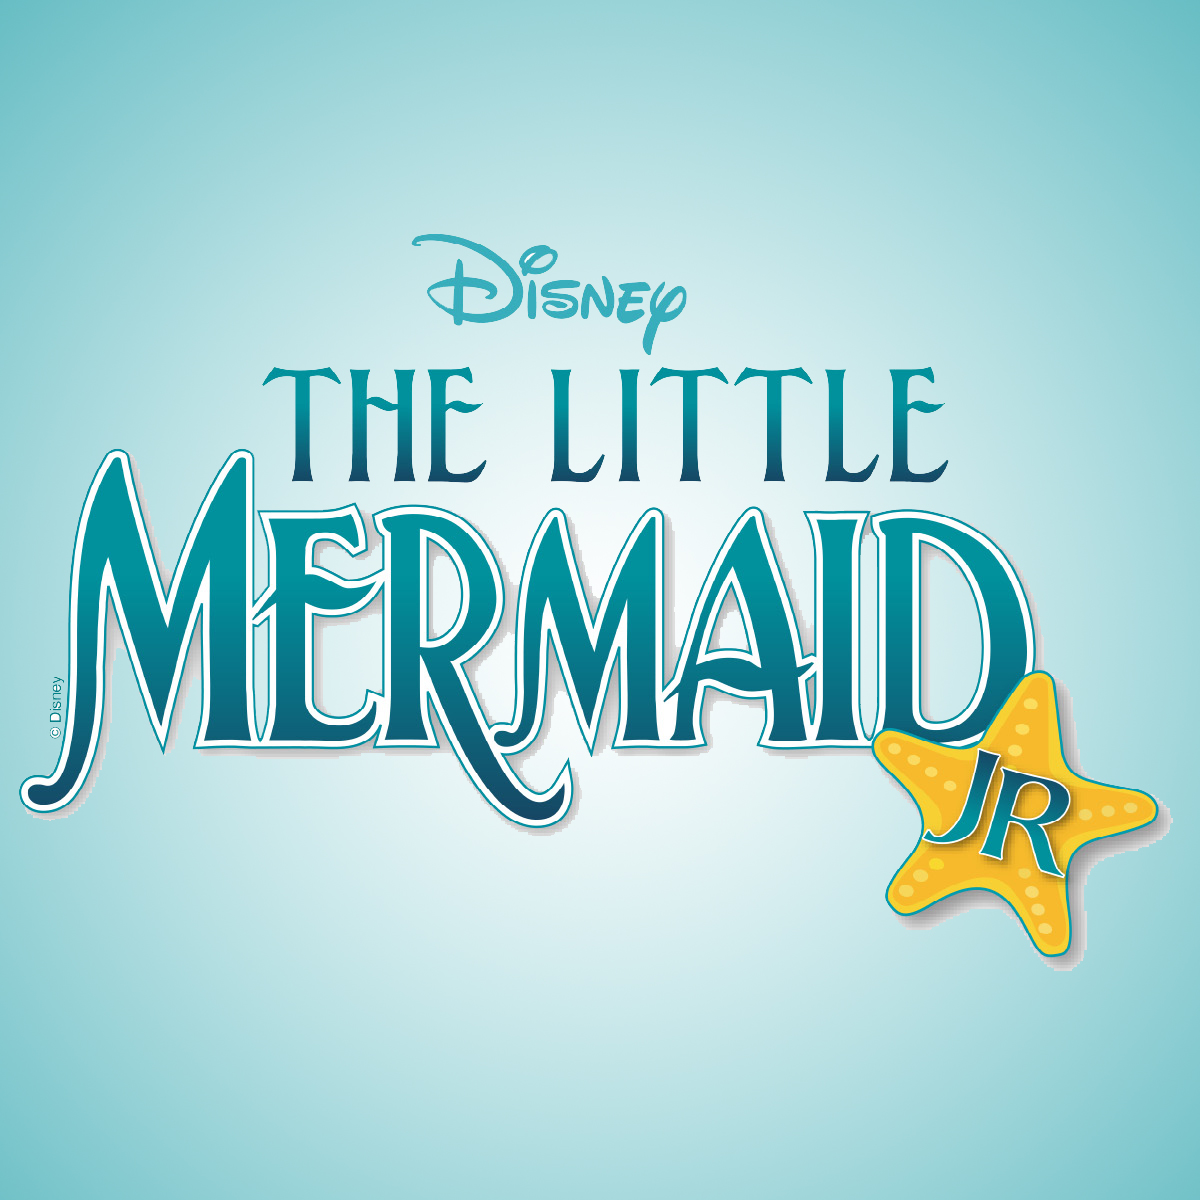 The Little Mermaid jr